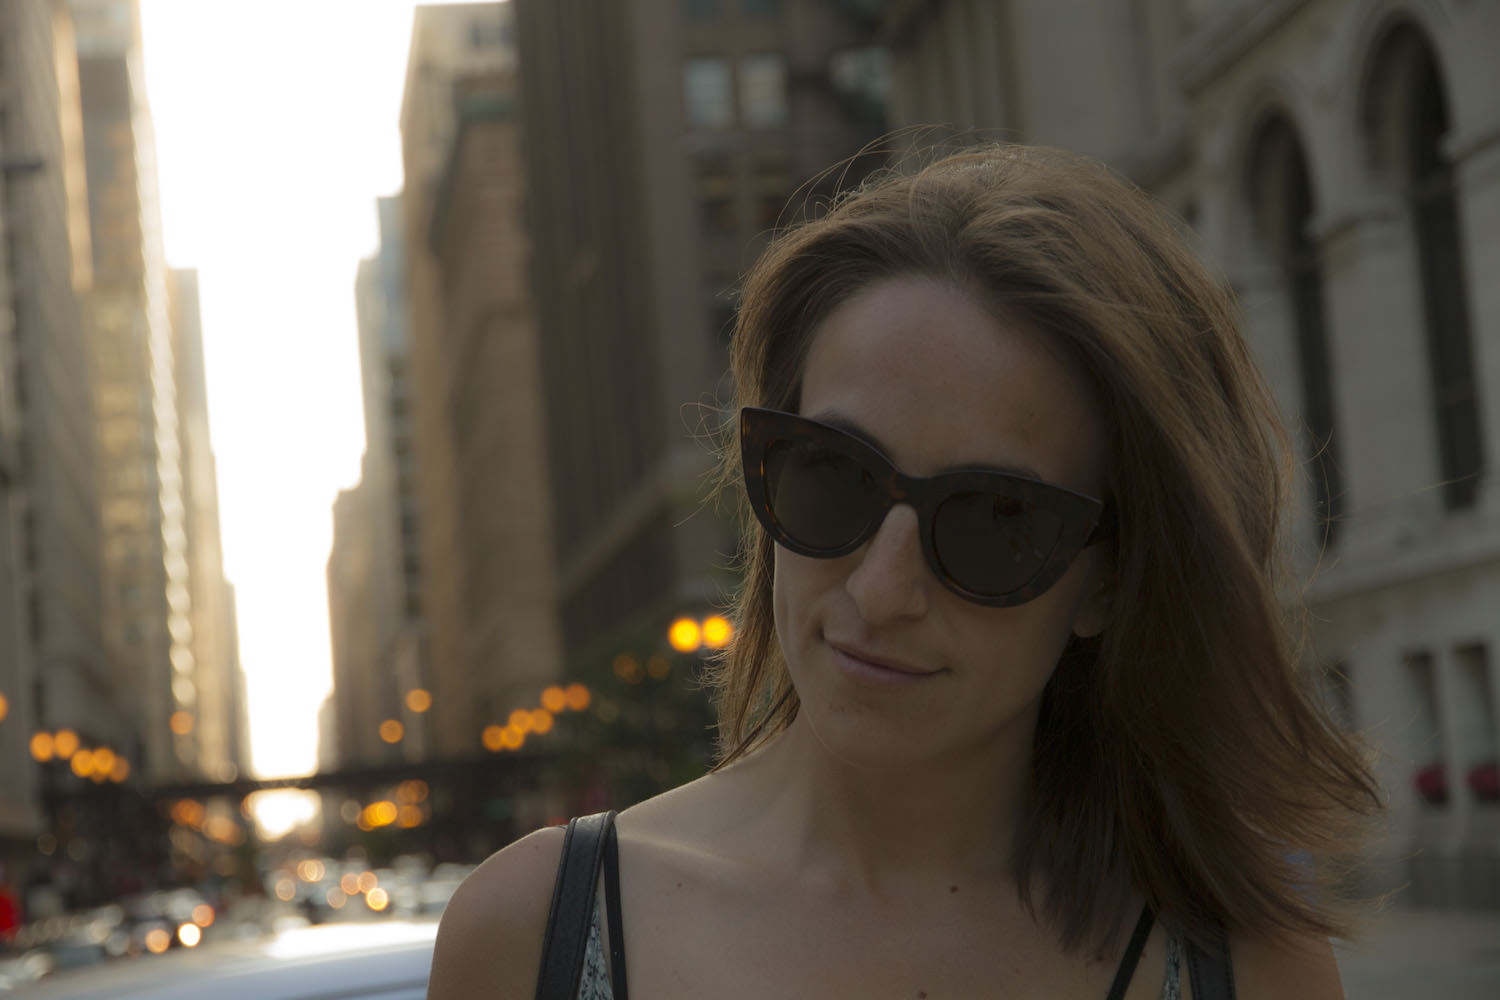 A little photo shoot at sunset in downtown Chicago.